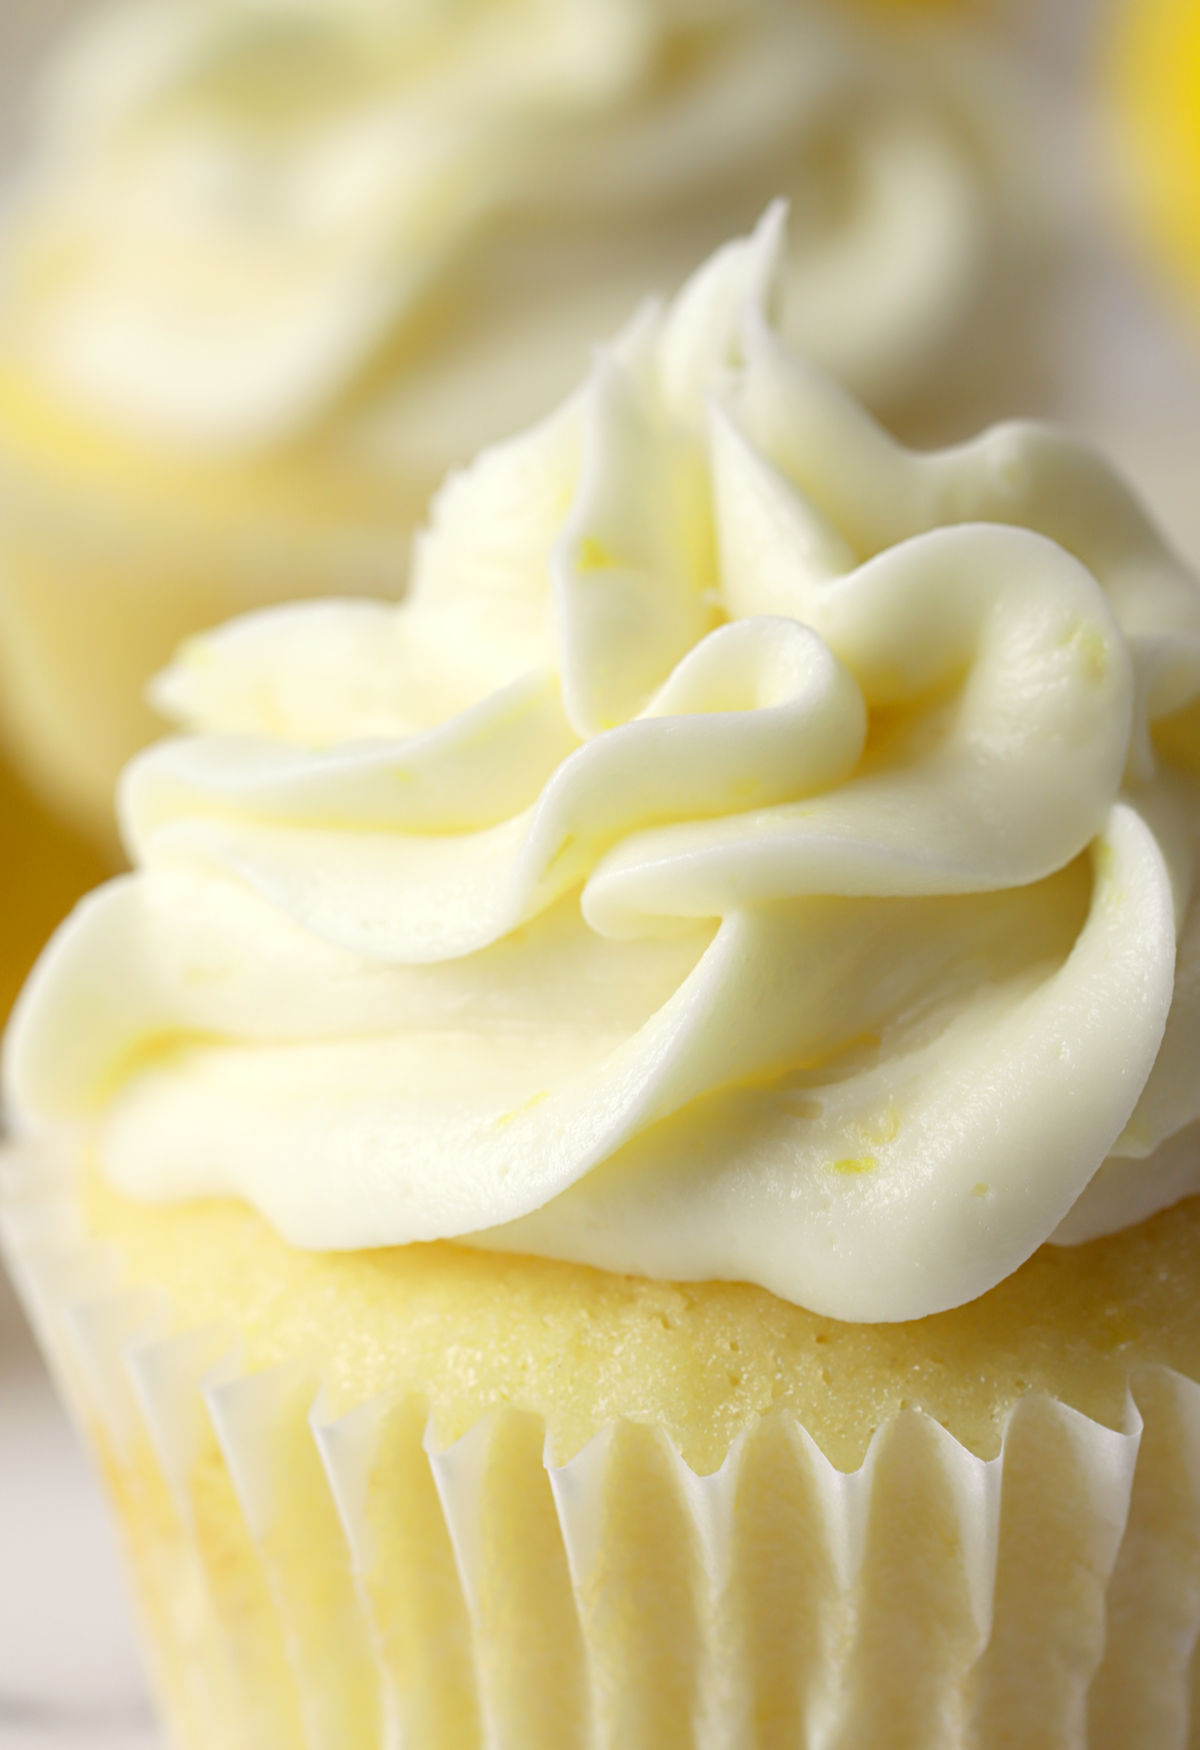 Lemon frosting piped onto a cupcake.